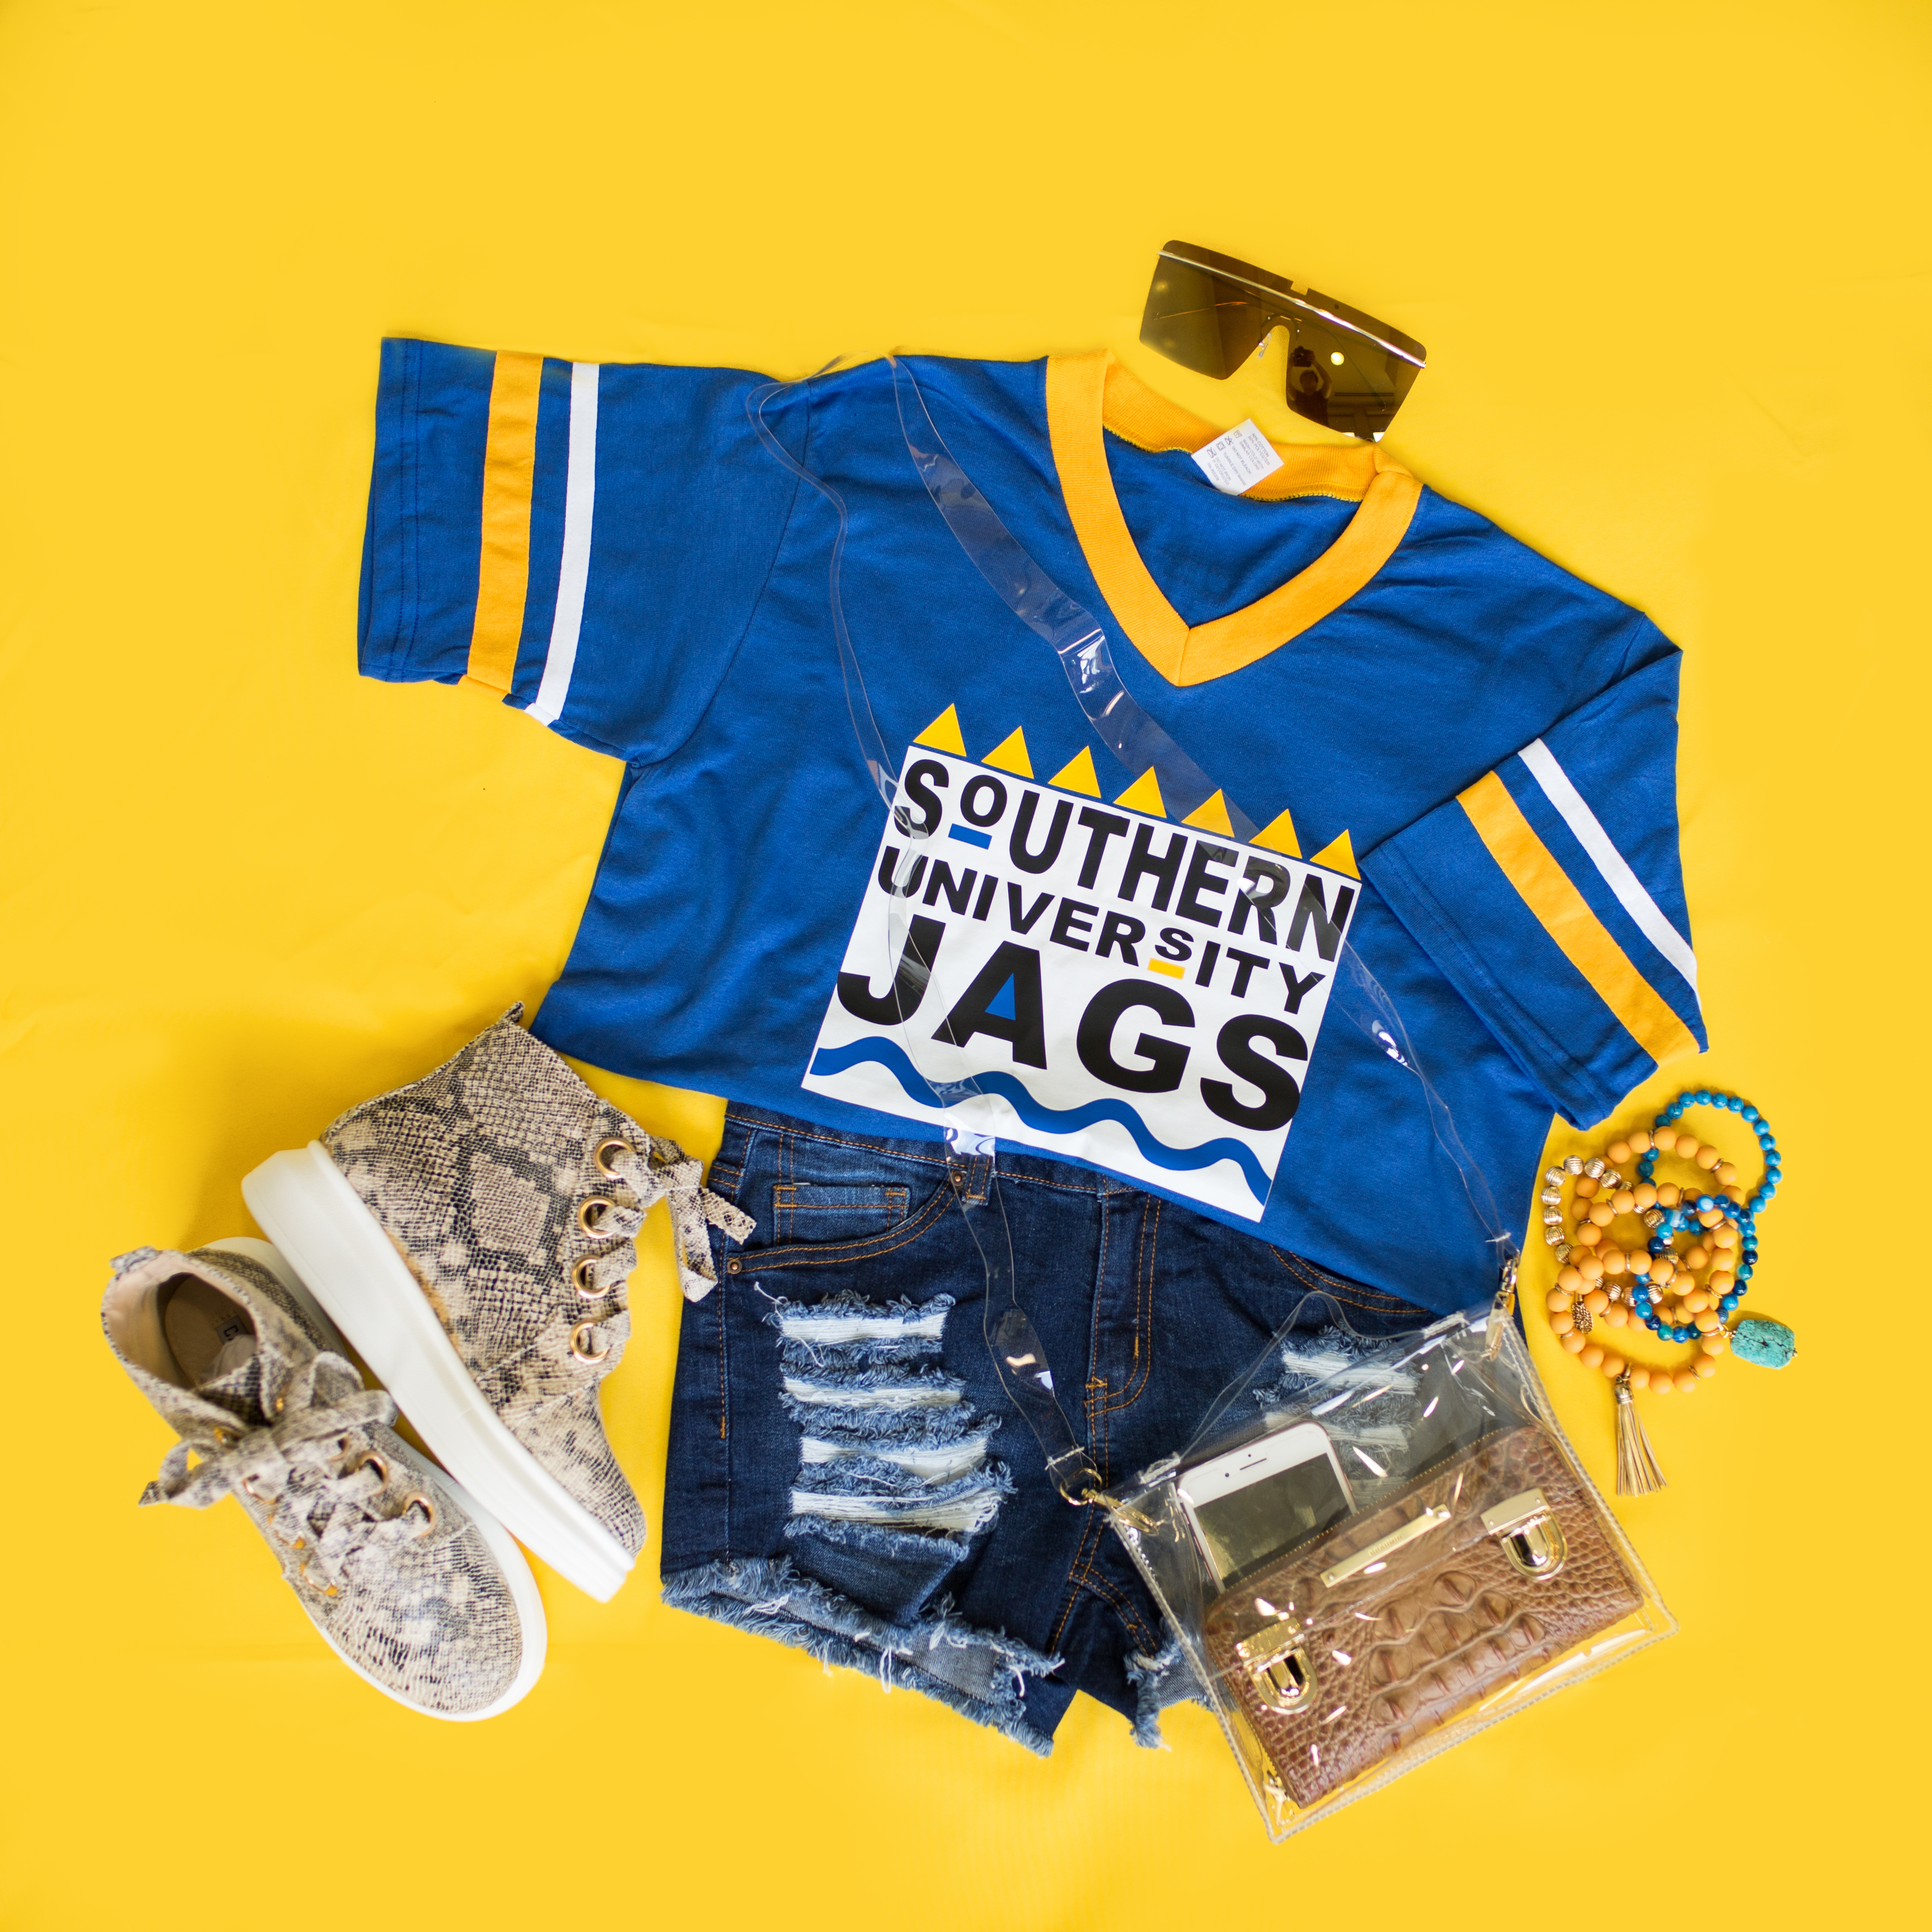 Tailgating Style Ideas For Southern University Football Season 225